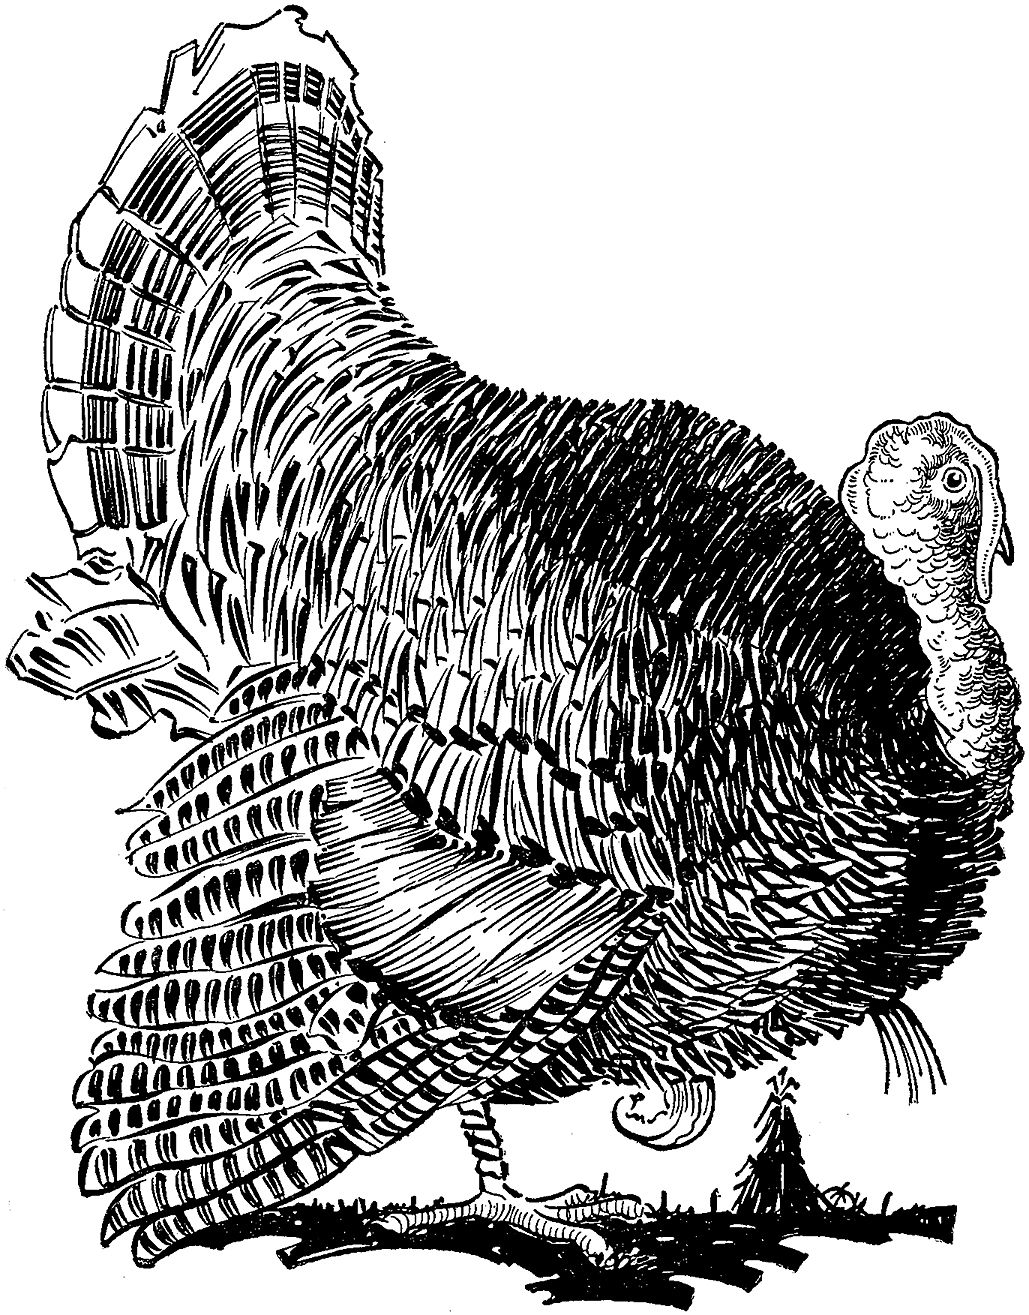 Thanksgiving Clipart Black and White Free | Thanksgiving clip art,  Thanksgiving images, Clip art